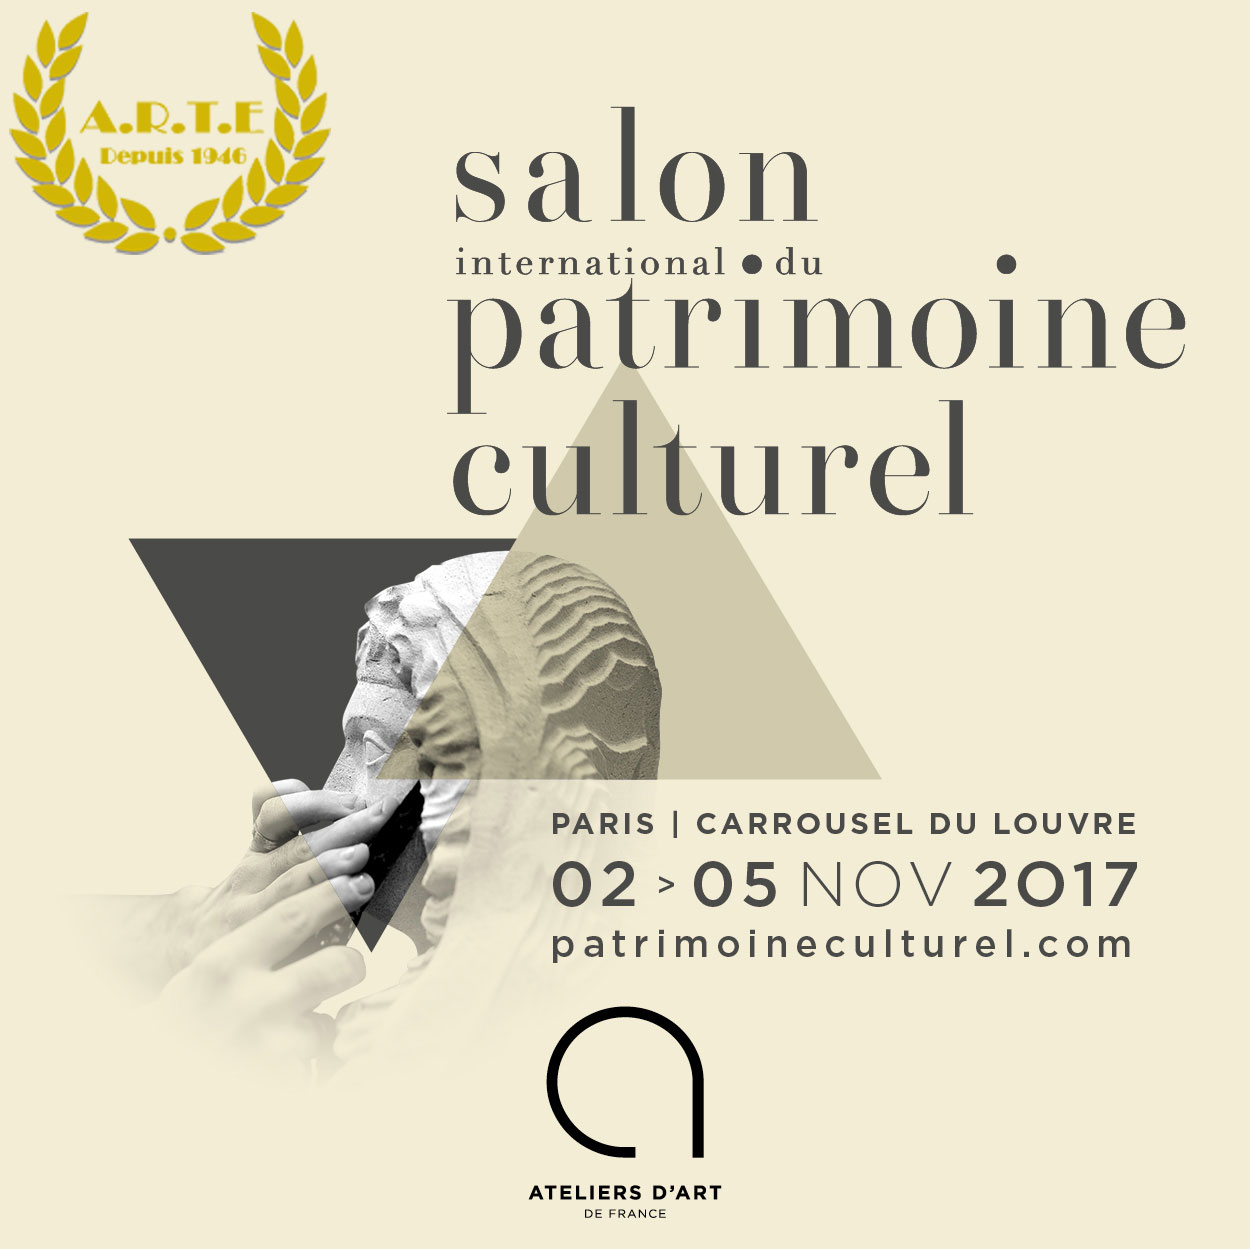 23 me salon du patrimoine culturel maison a r t emaison for Salon airsoft 2017 paris